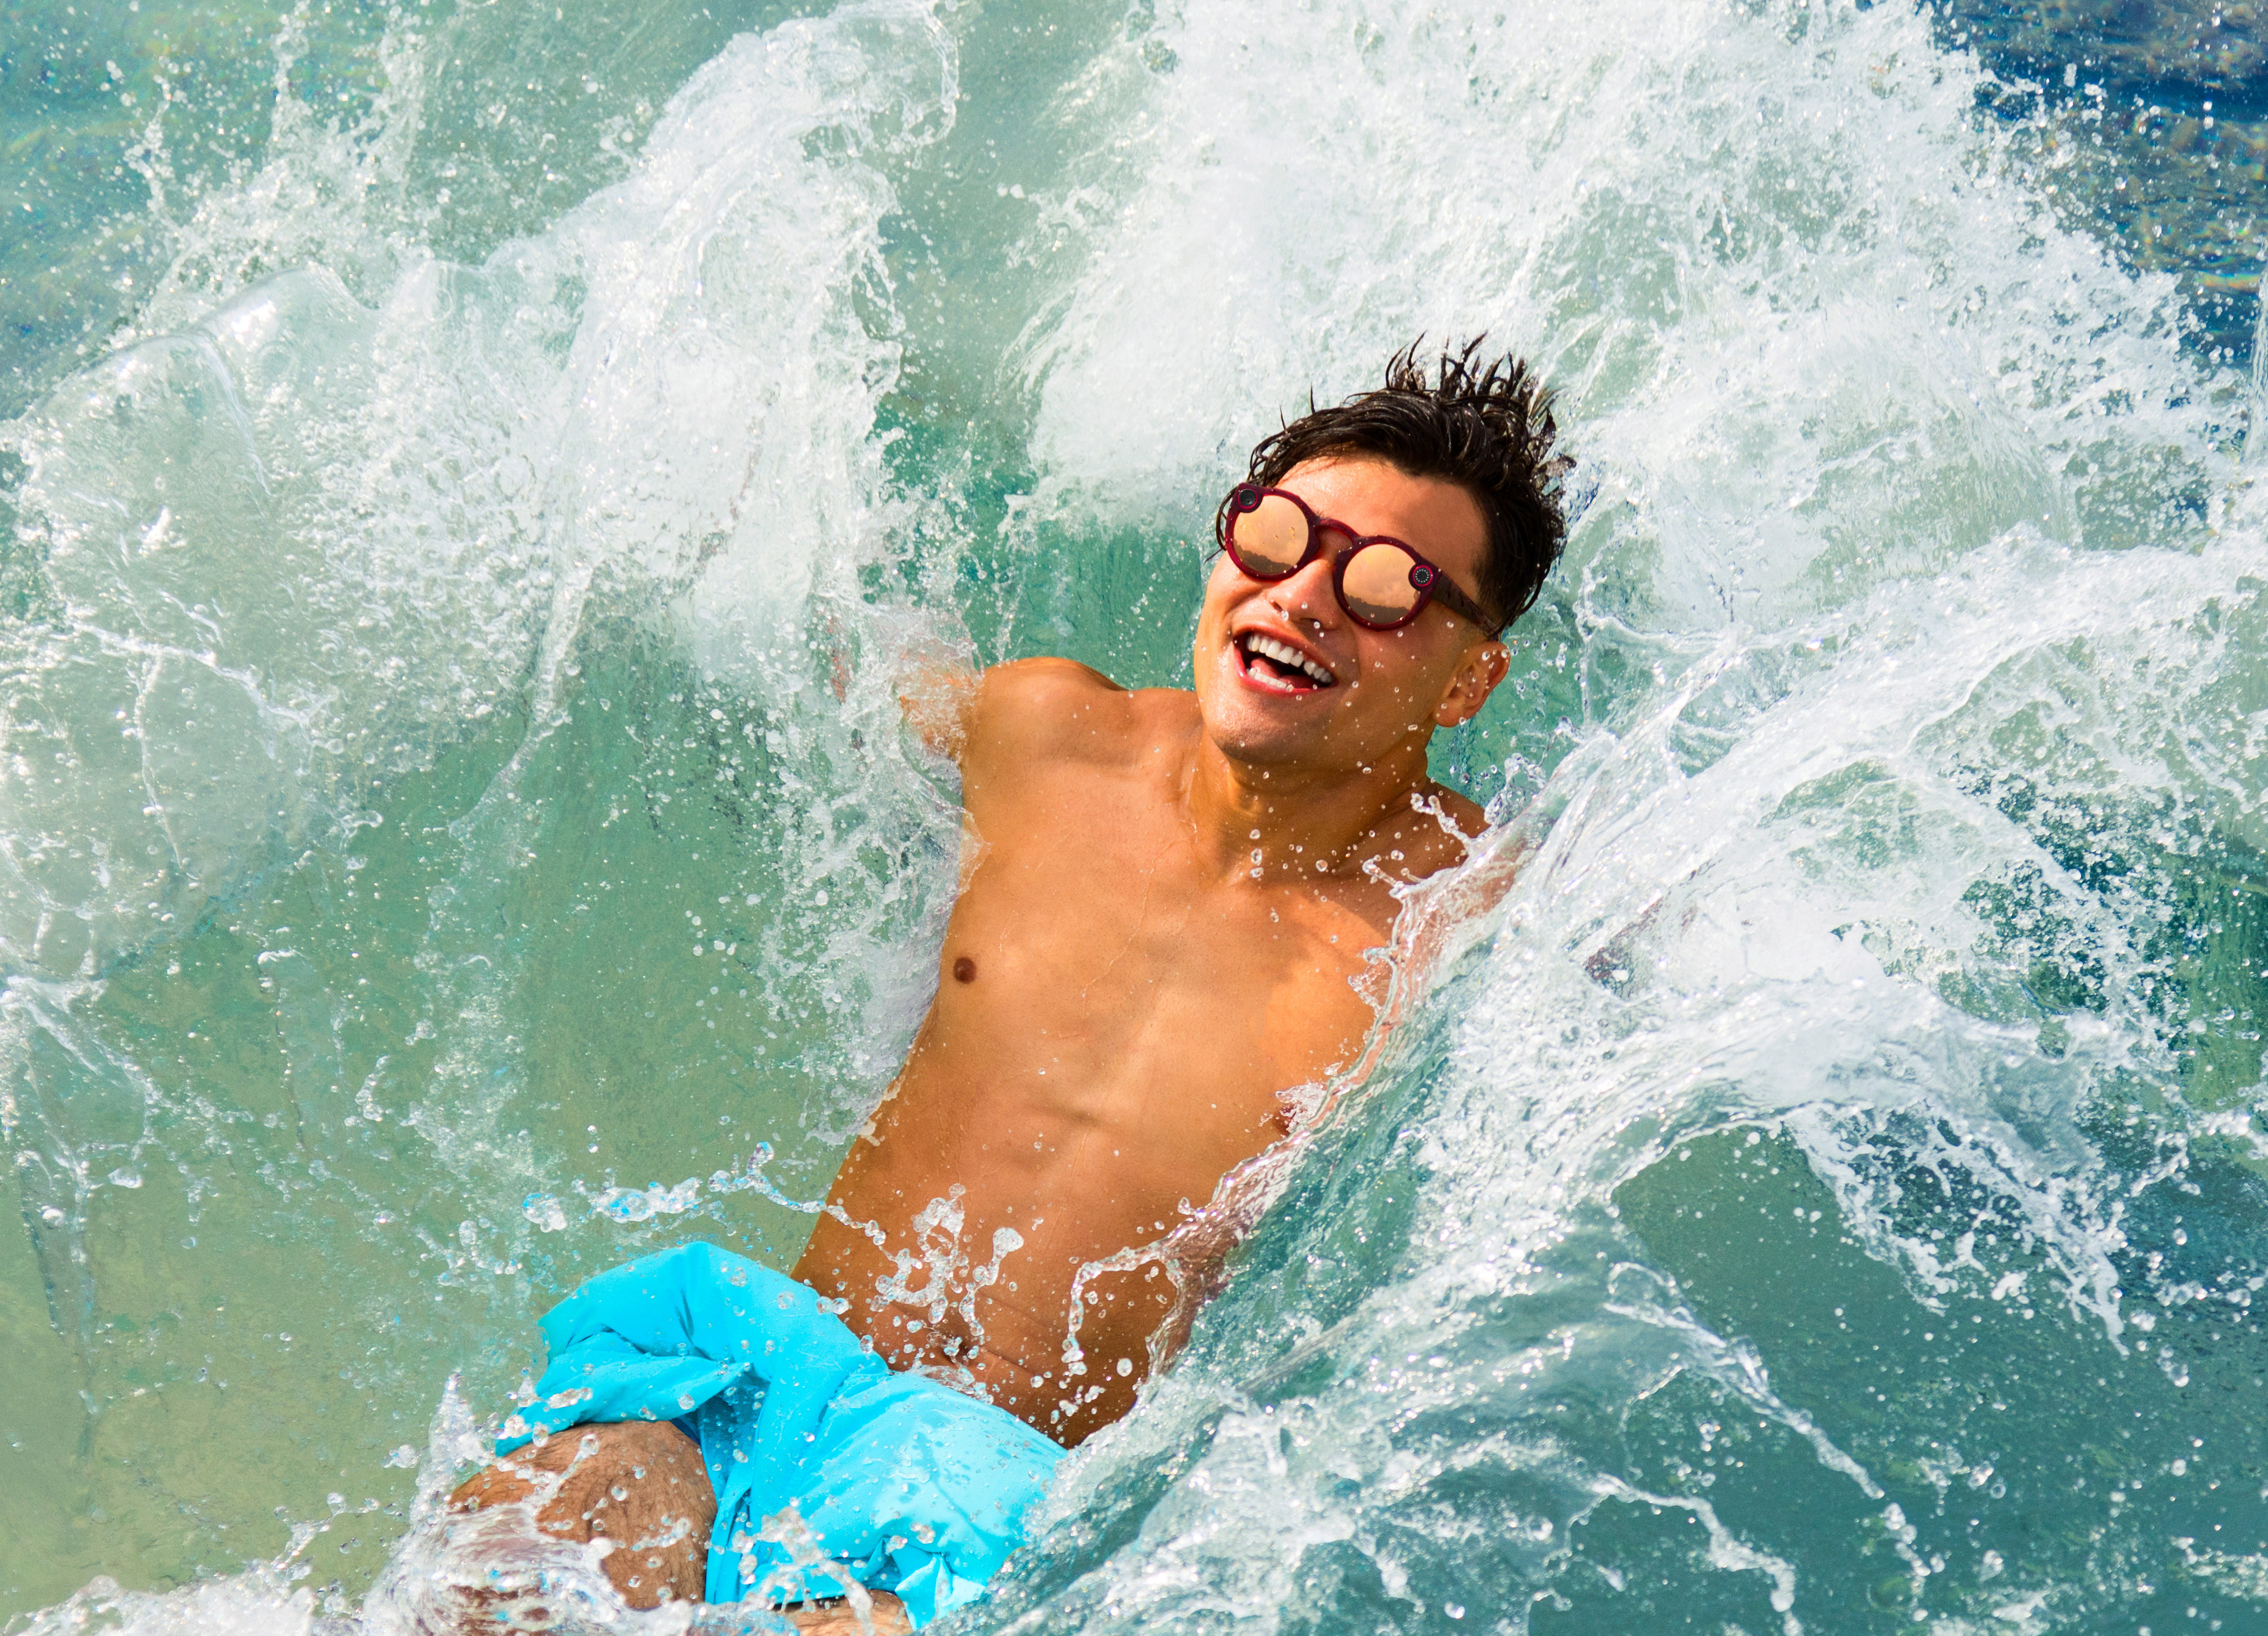 A guy wears Snapchat's new Spectacles as he falls into a pool.